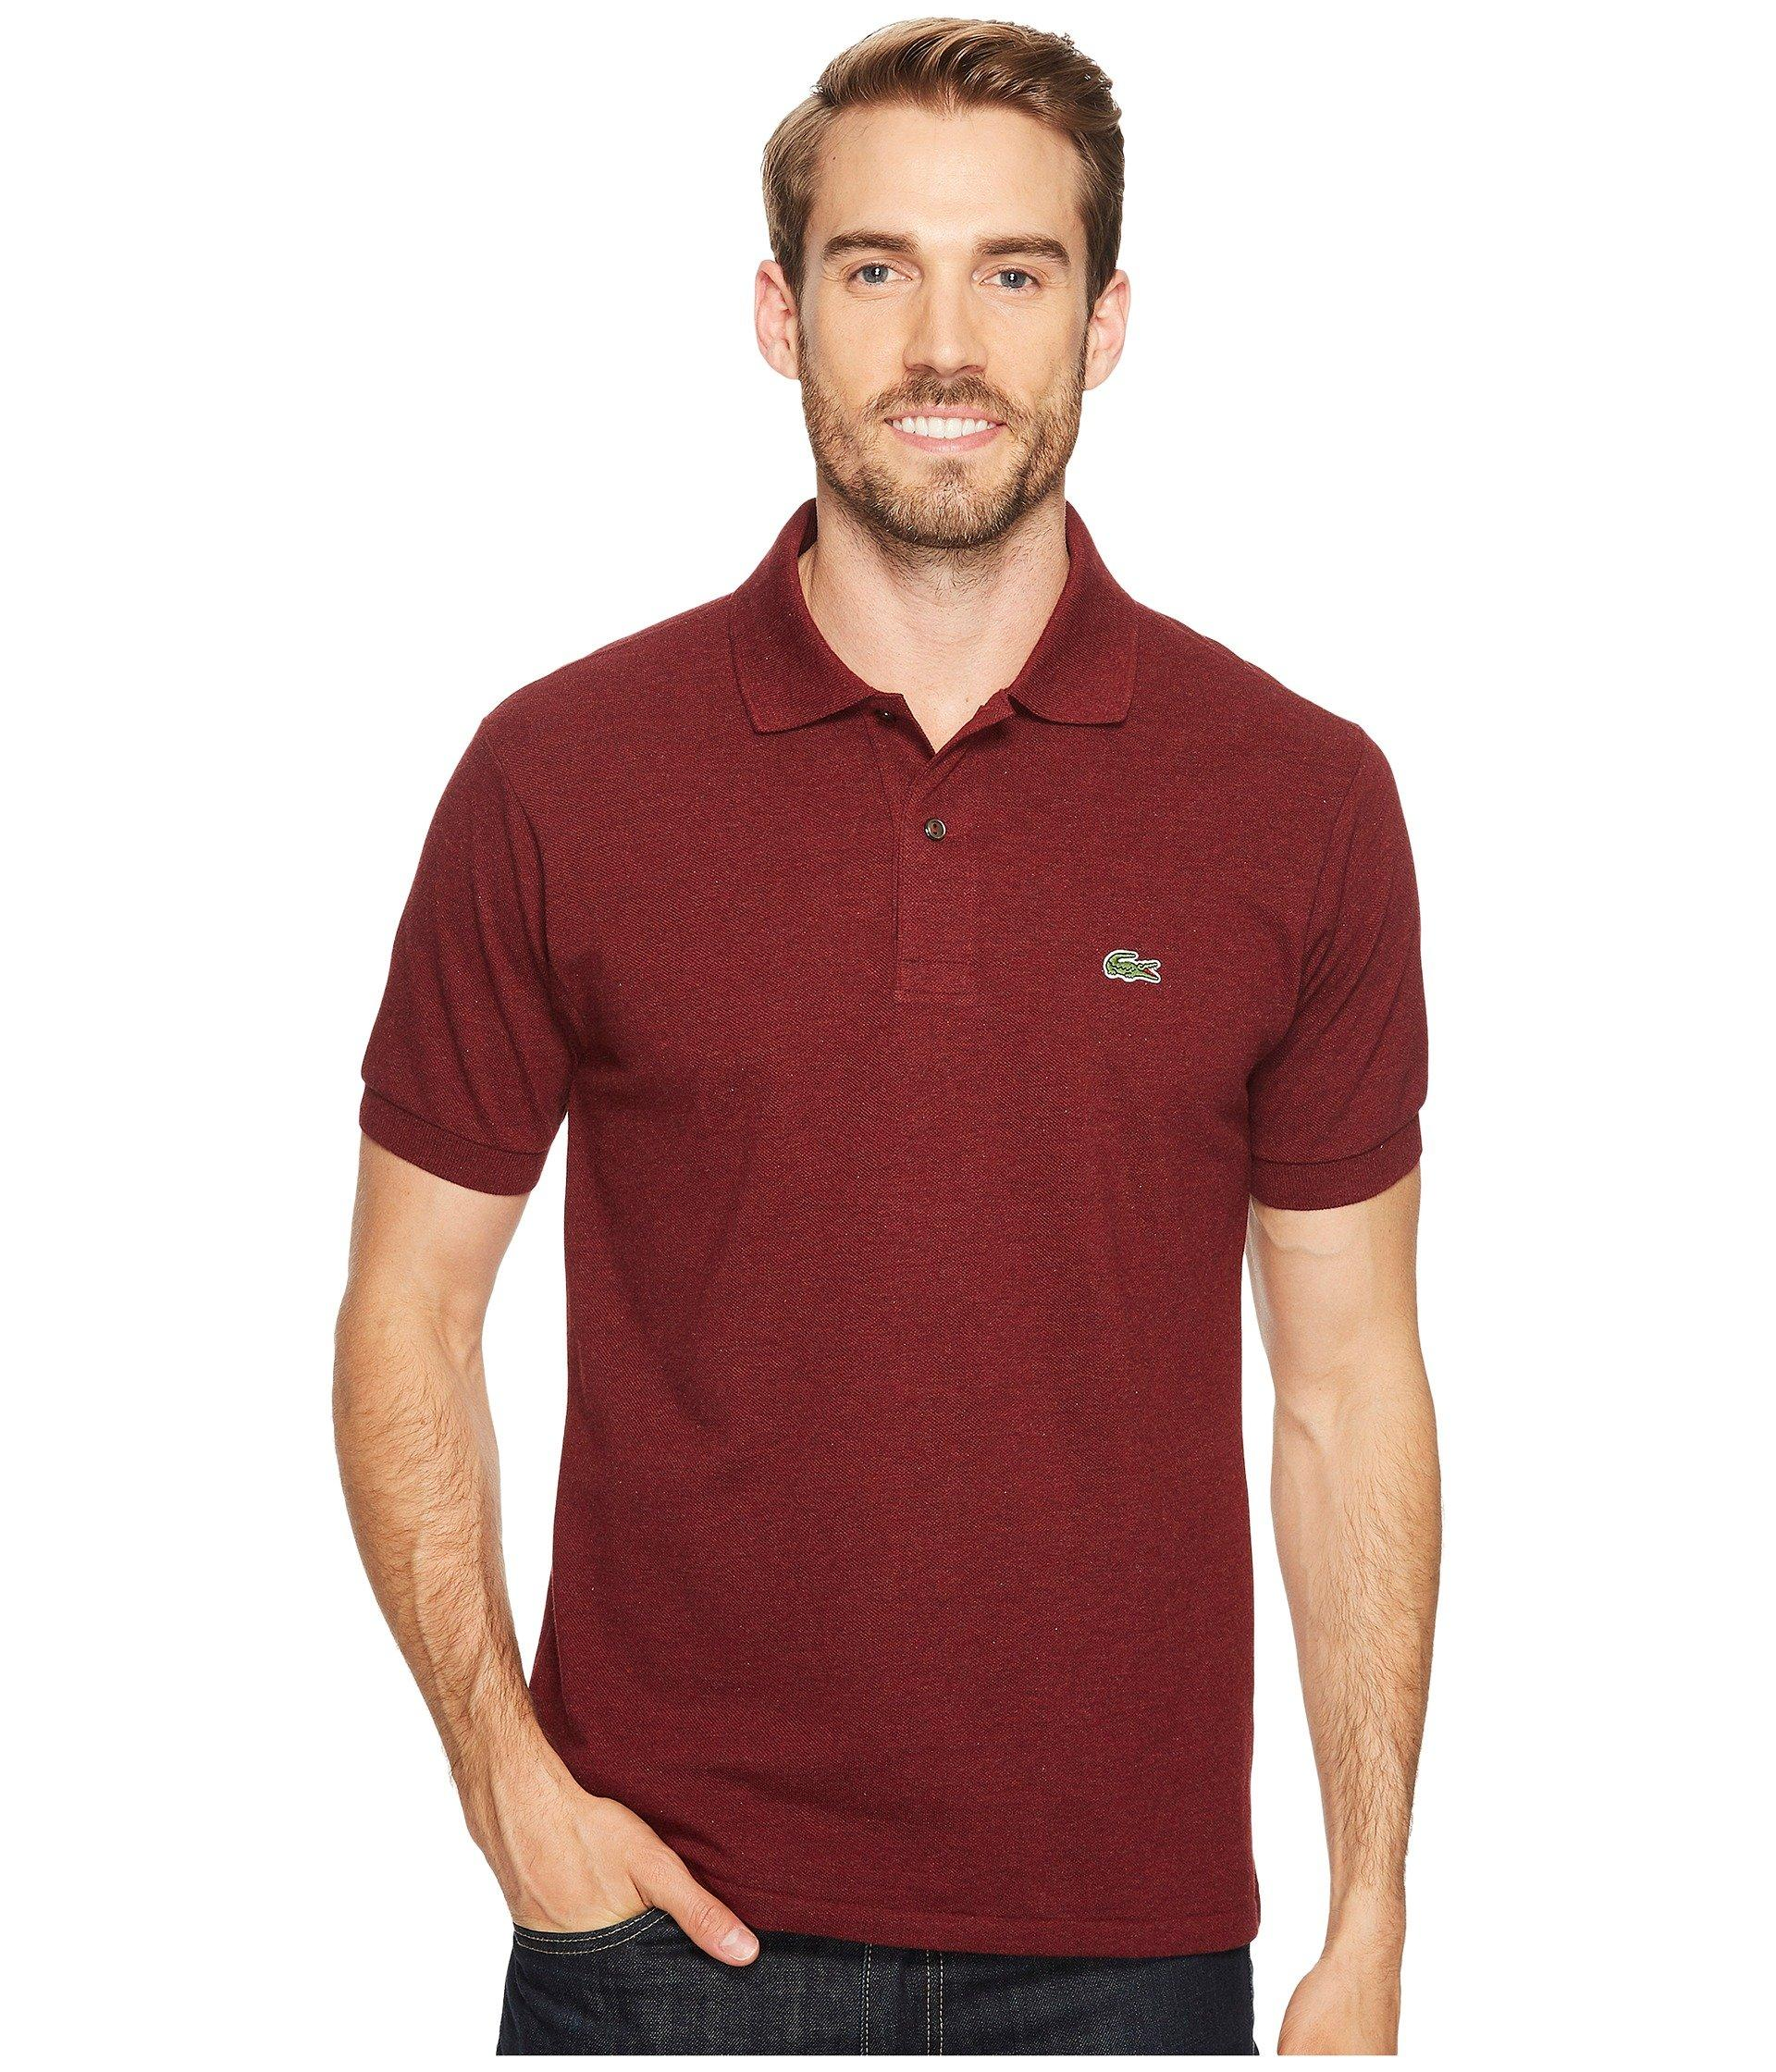 5836cf335 Lacoste Short Sleeve Classic Fit Chine Pique Polo Shirt In Red Basque Chine